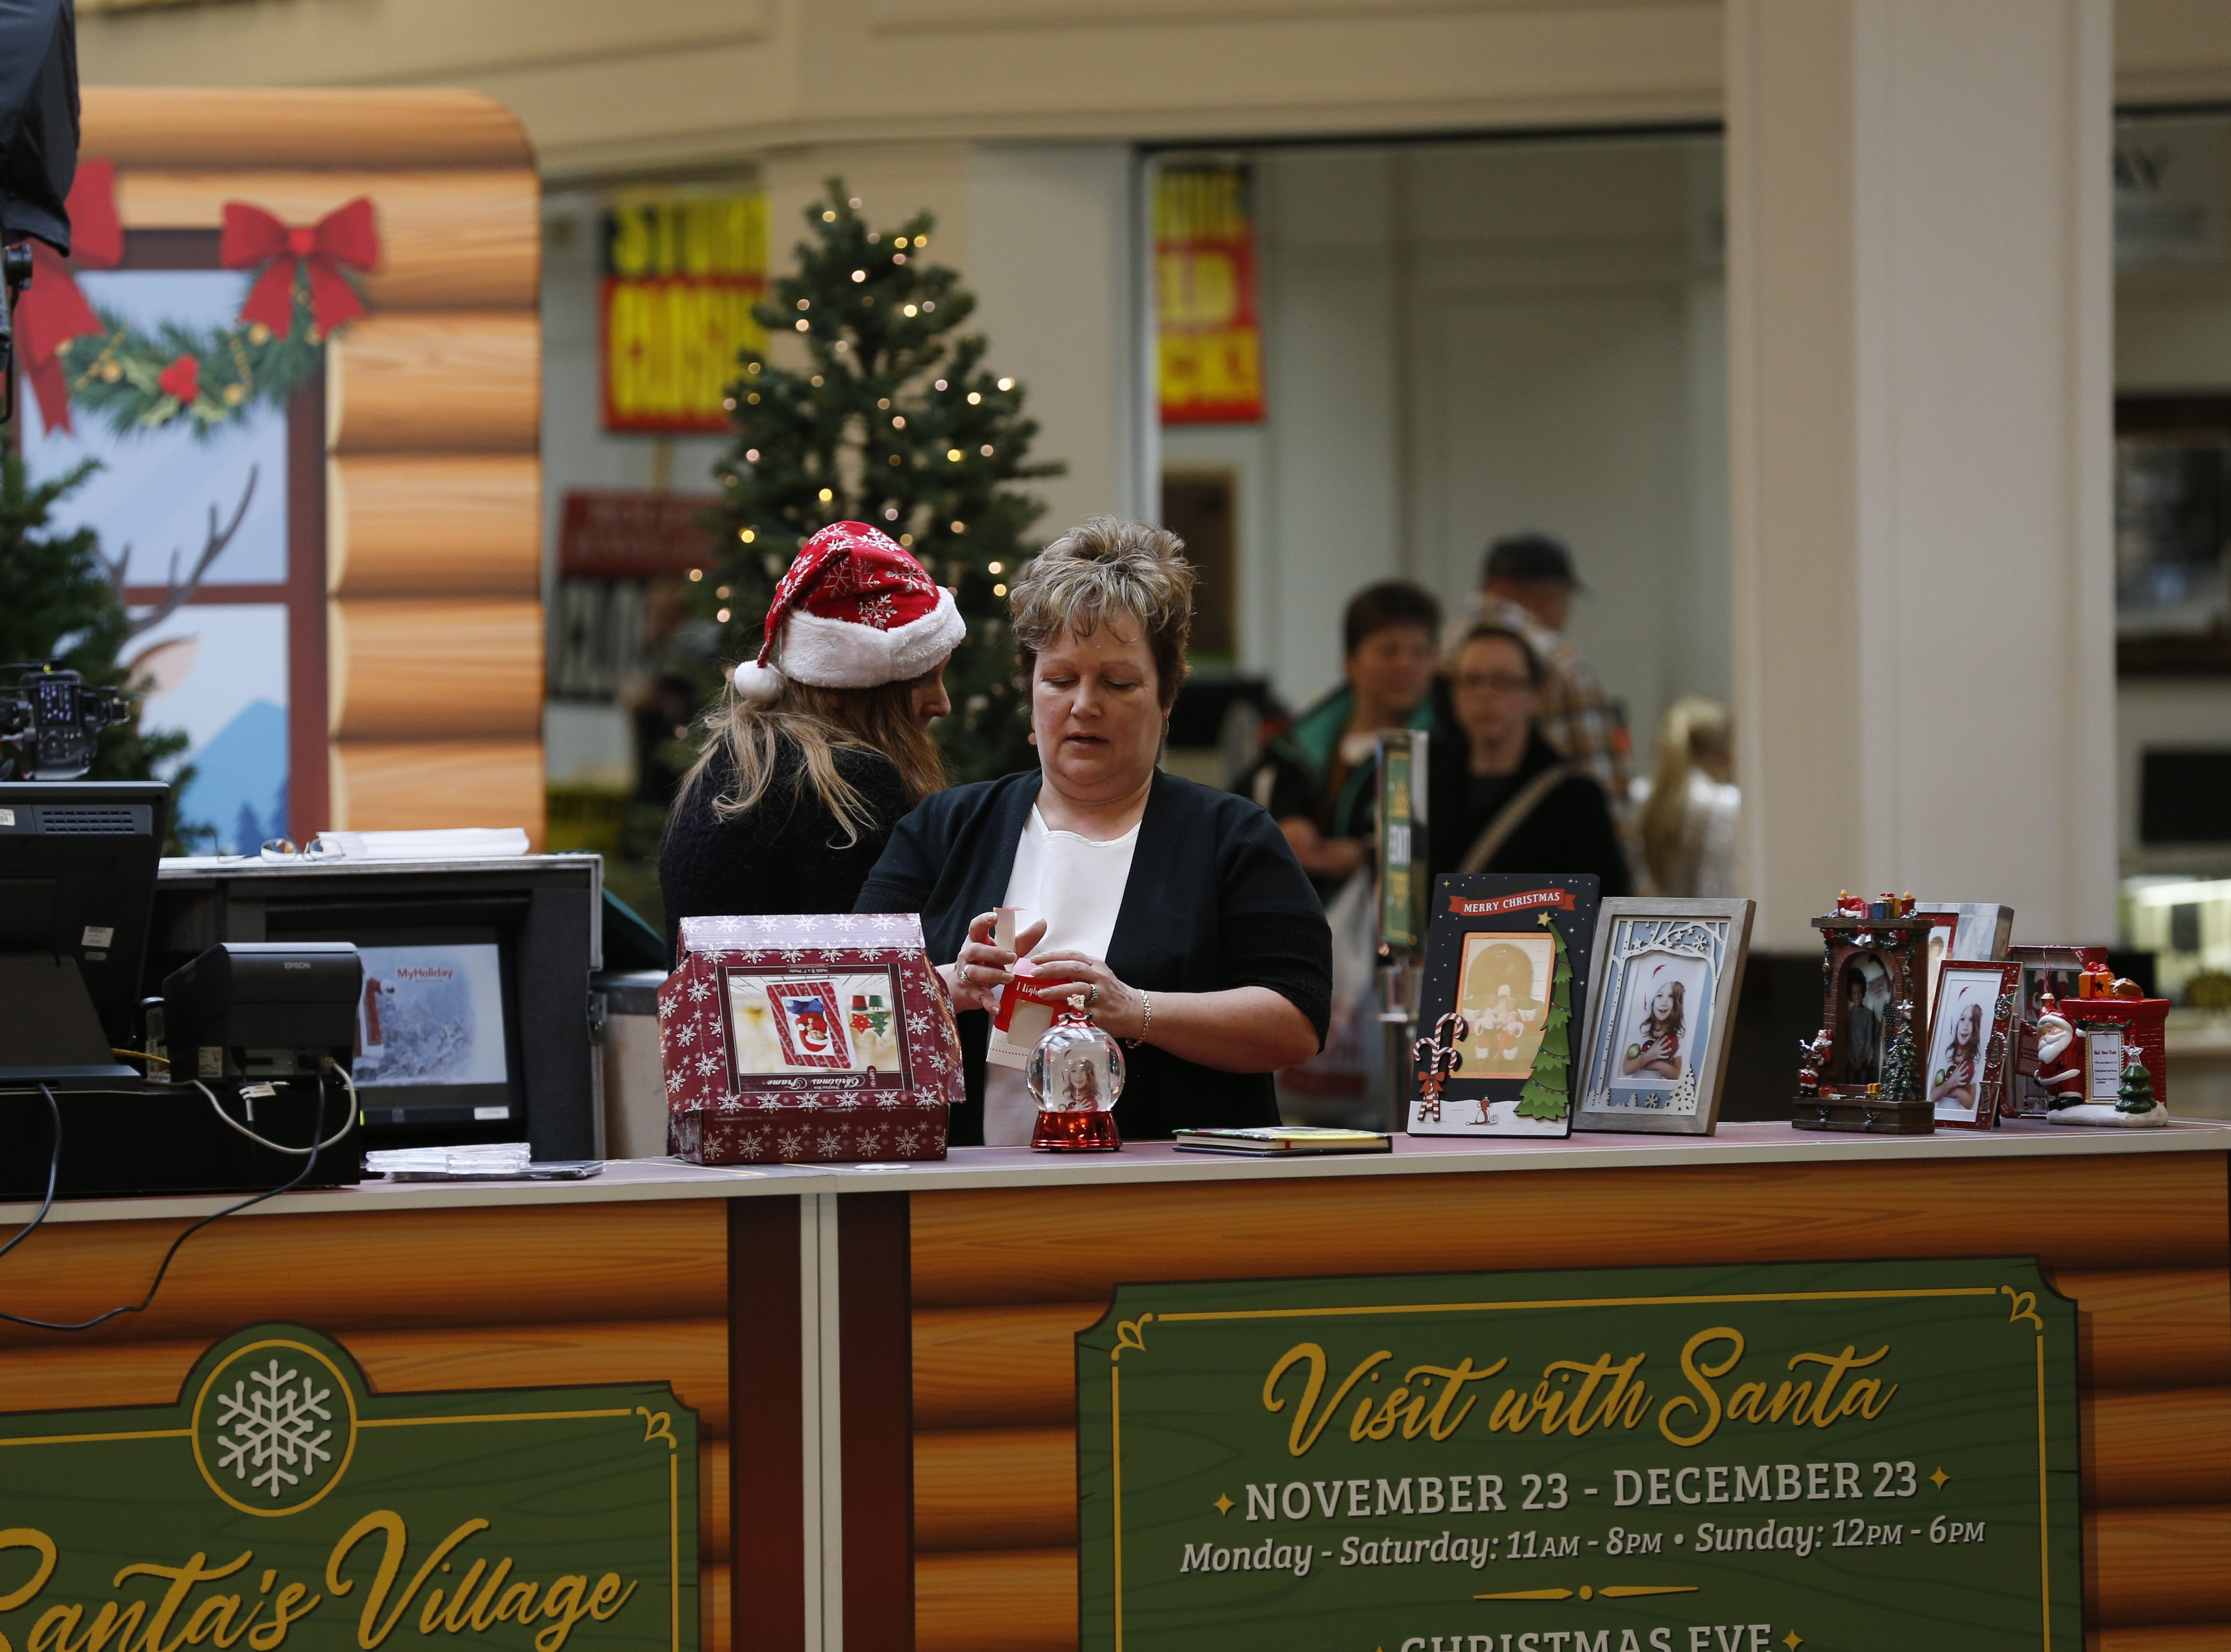 Santa's area at the Richmond Mall has had a makeover this year. Mr. Claus made his arrival Friday, Nov. 23, 2018, and will be there through Christmas Eve.